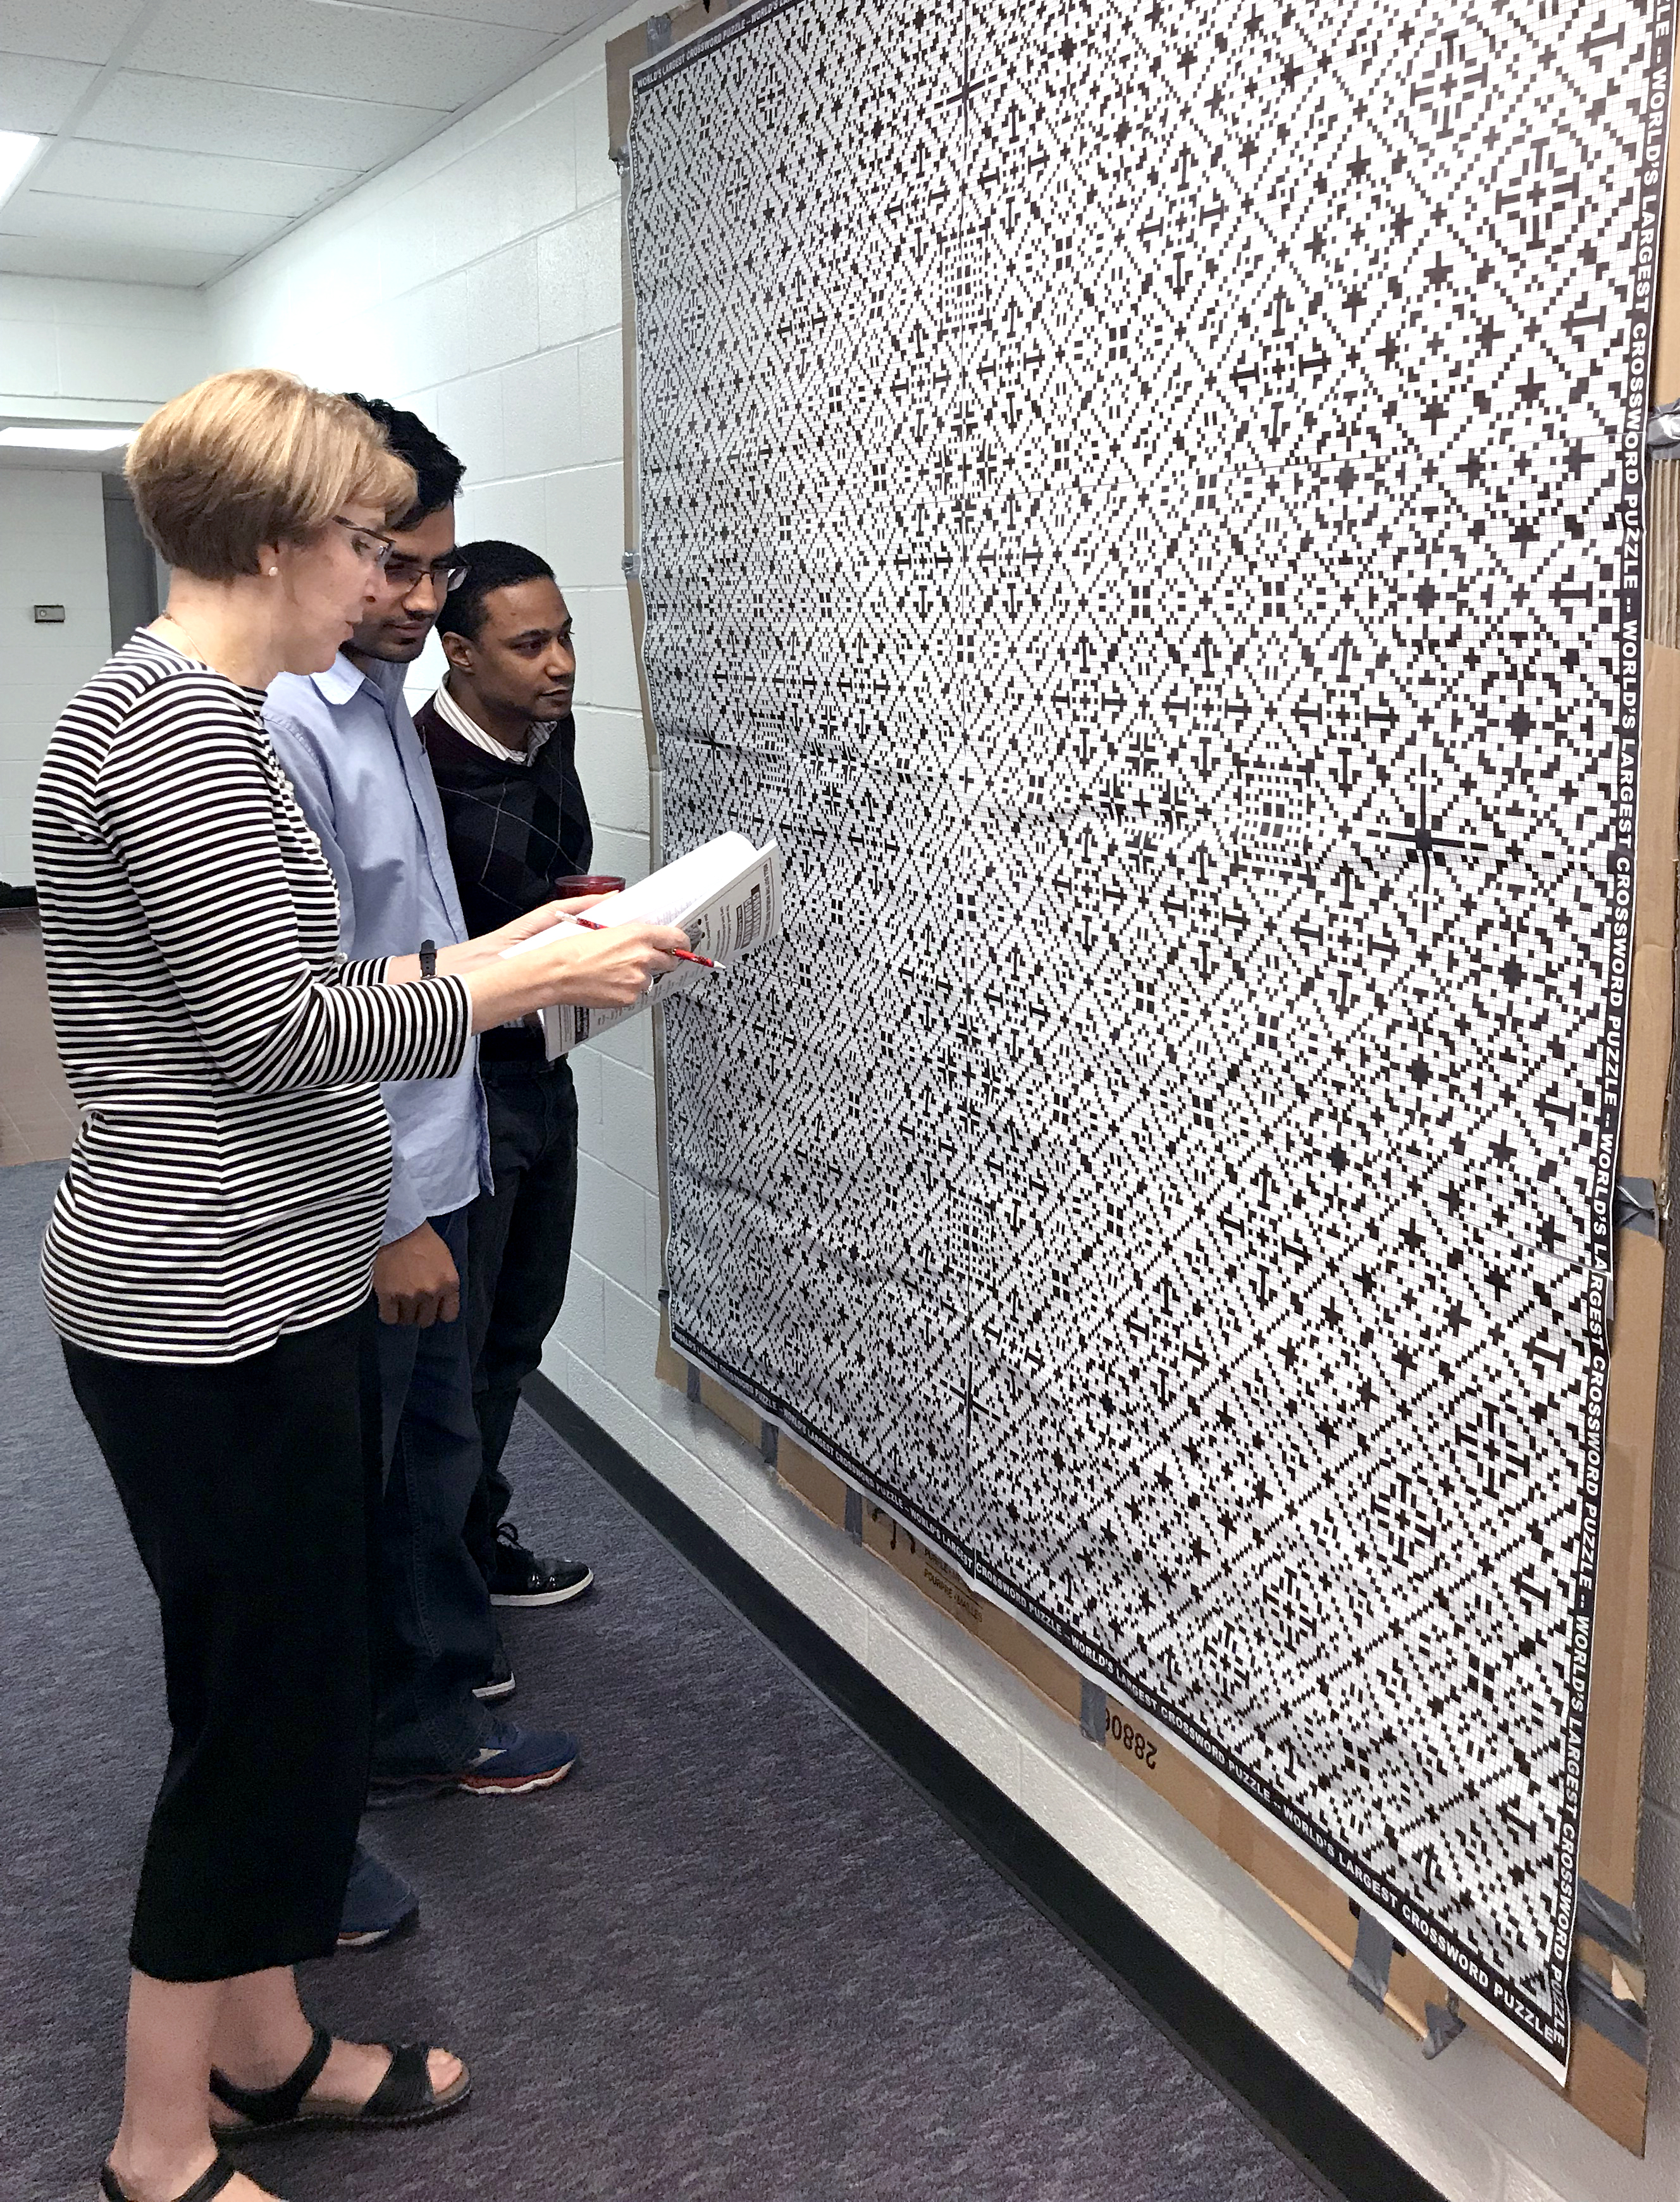 Giant Crossword Puzzle In Unger Complex Inside Its